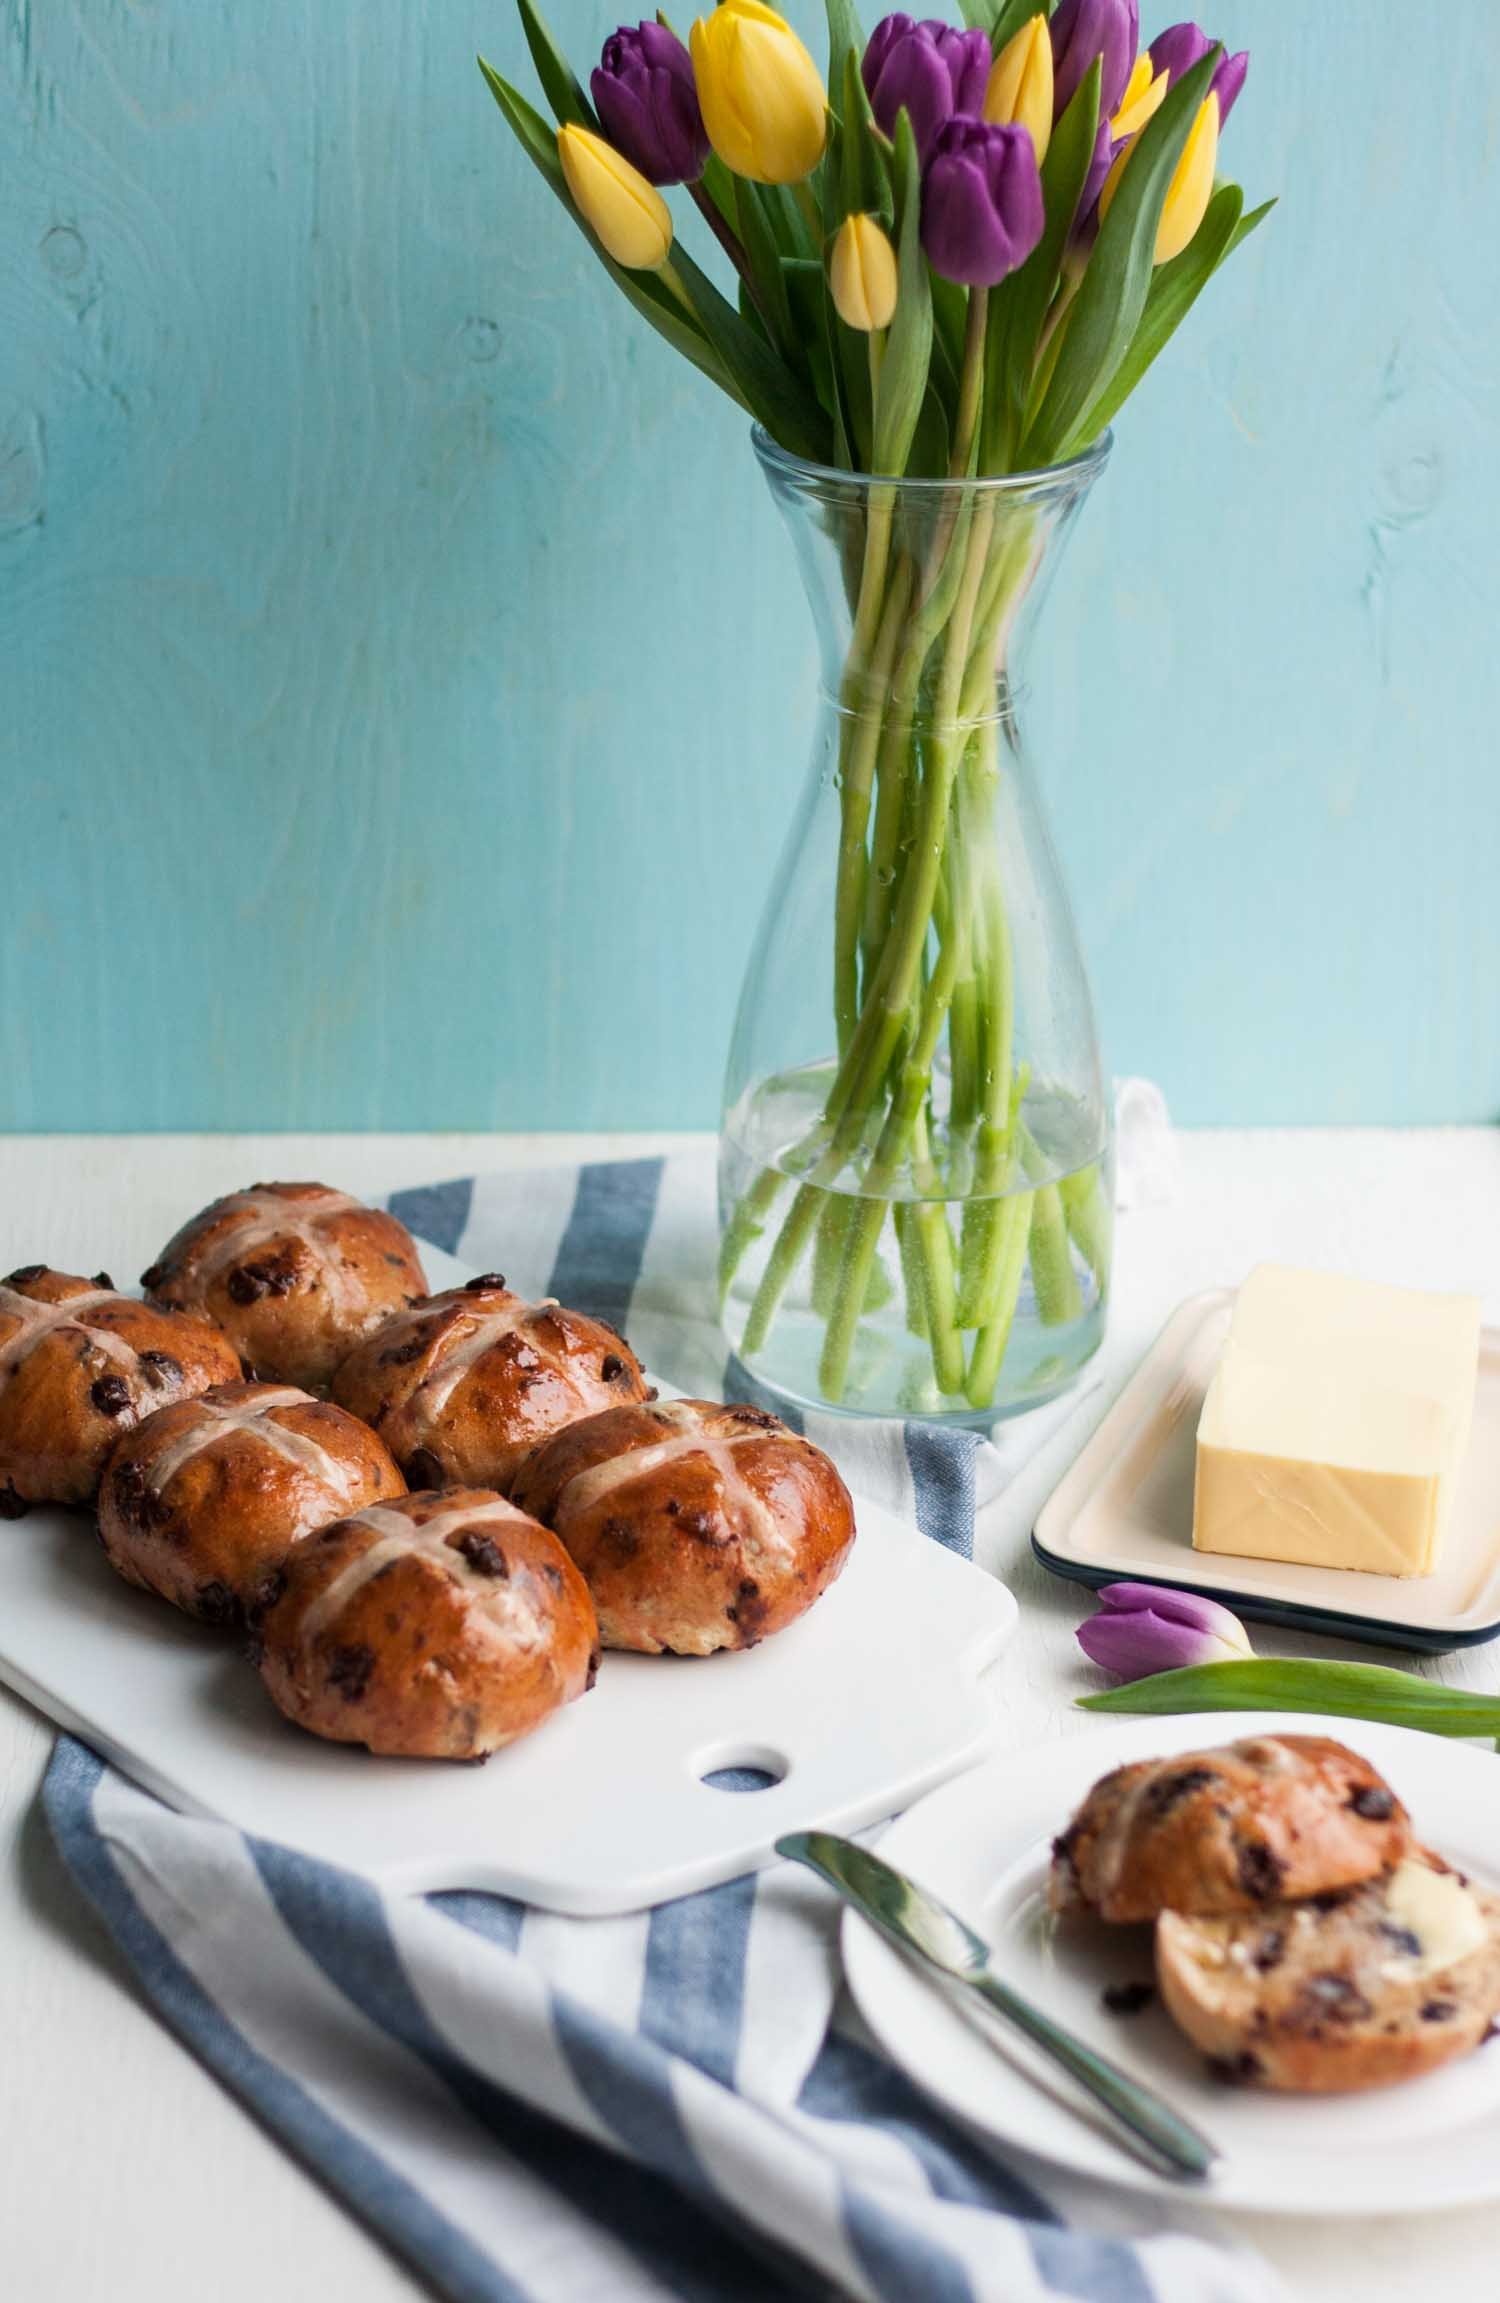 Chocolate Cherry Hot Cross Buns - these richly spiced and pillowy soft hot cross buns are filled with chocolate chips and dried cherries and are the perfect Easter treat!   eatloveeats.com